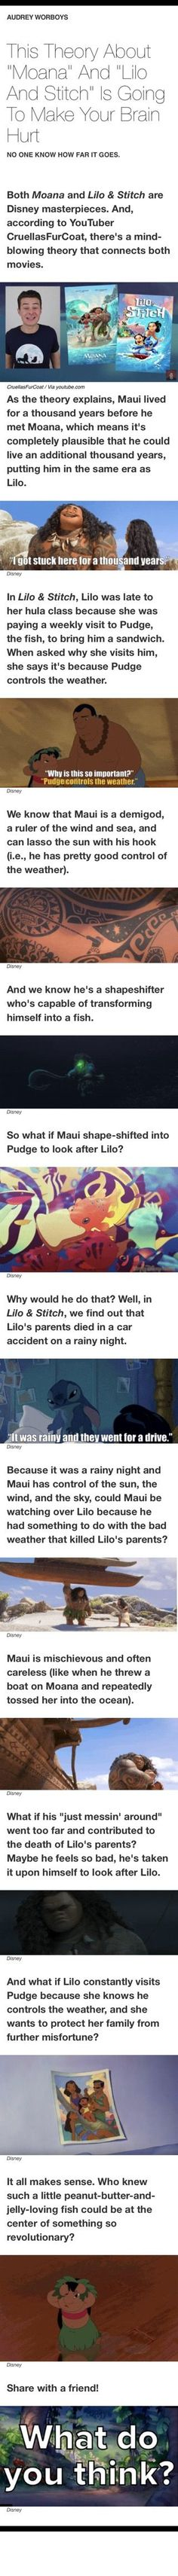 THAT WOULD BE SO SAD YET CUTE! WHAT IF ONE DAY LILO GETS STUCK IN BAD WEATHER WHILE VISITING HIM AND HE POPS OUT AND SAVES HER!